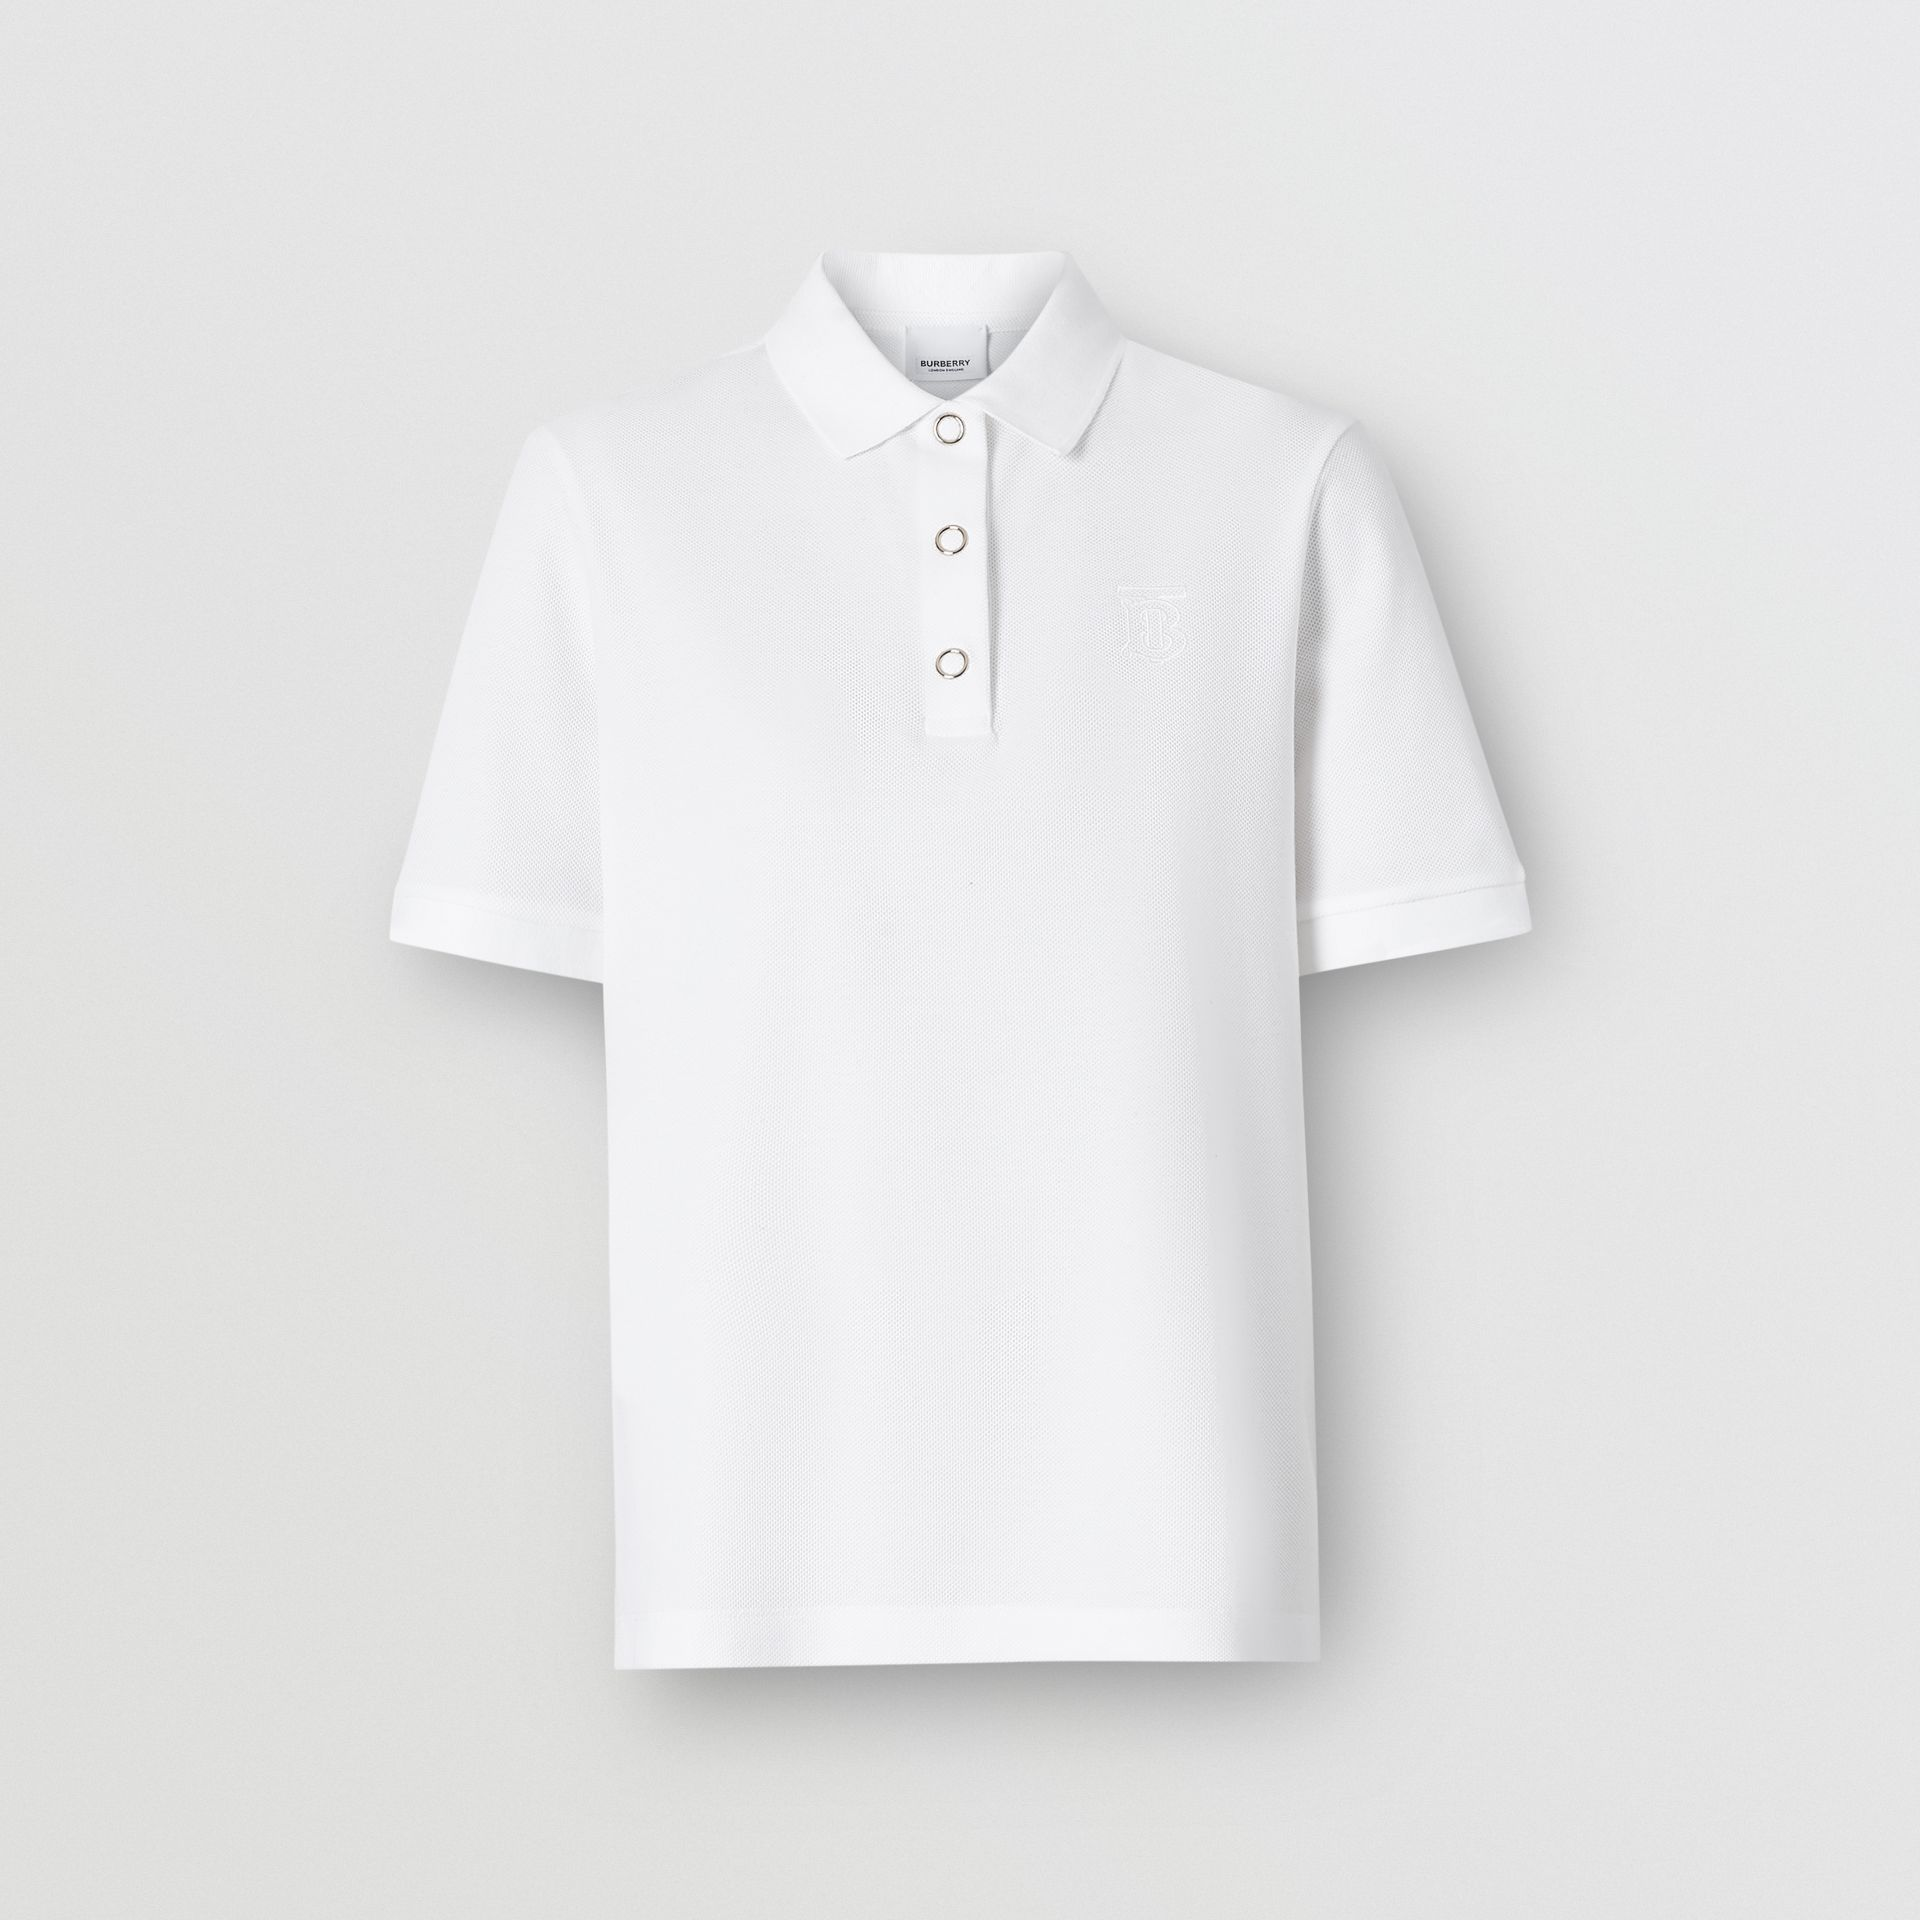 Monogram Motif Cotton Piqué Polo Shirt in White - Women | Burberry Singapore - gallery image 3